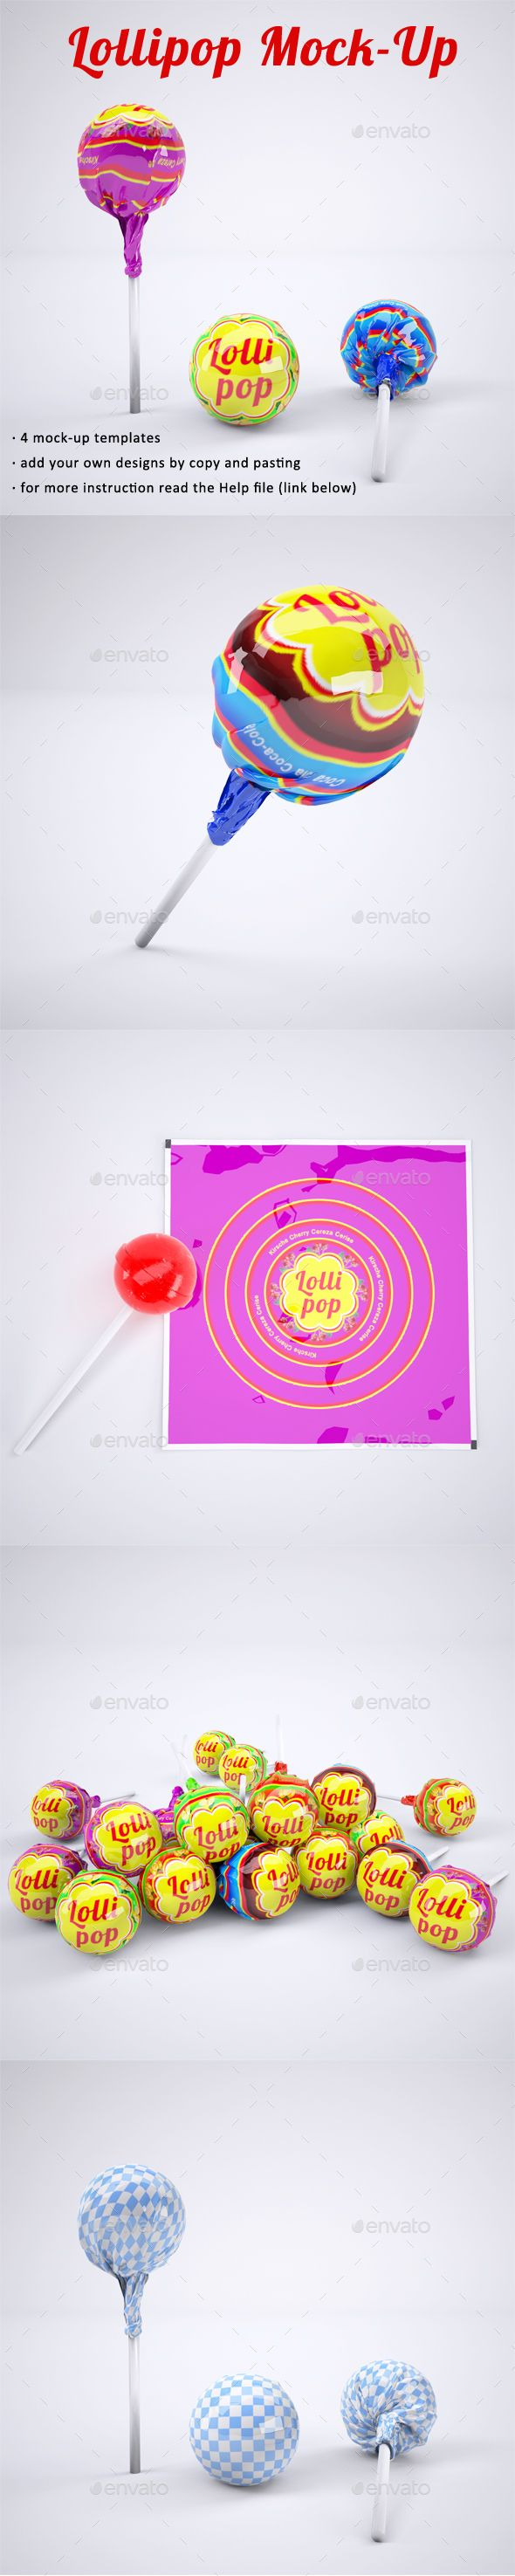 Lollipop MockUp — Photoshop PSD #lolly #promotional lollipops • Available here ➝ https://graphicriver.net/item/lollipop-mockup/20972089?ref=pxcr